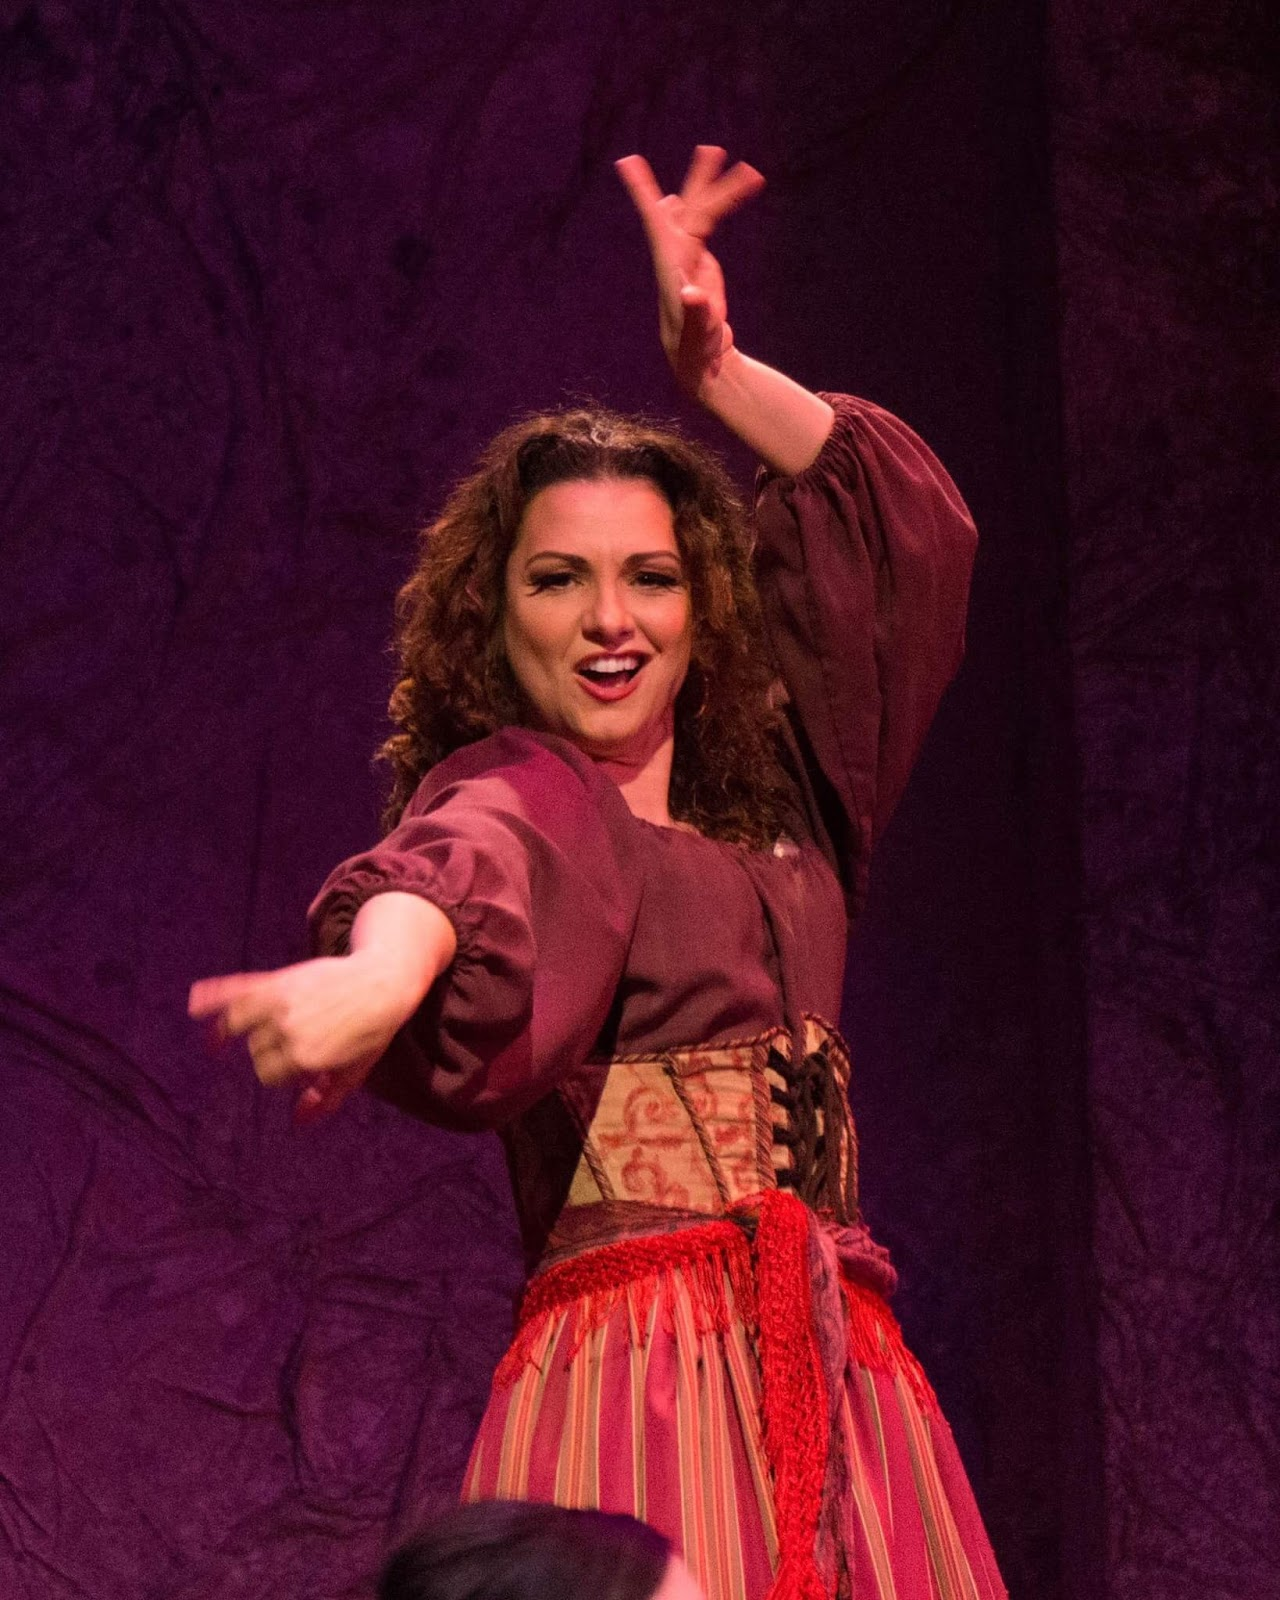 IN PERFORMANCE: Mezzo-soprano SANDRA PIQUES EDDY as the title heroine in Greensboro Opera's production of Georges Bizet's CARMEN, January 2017 [Photo © by Greensboro Opera]